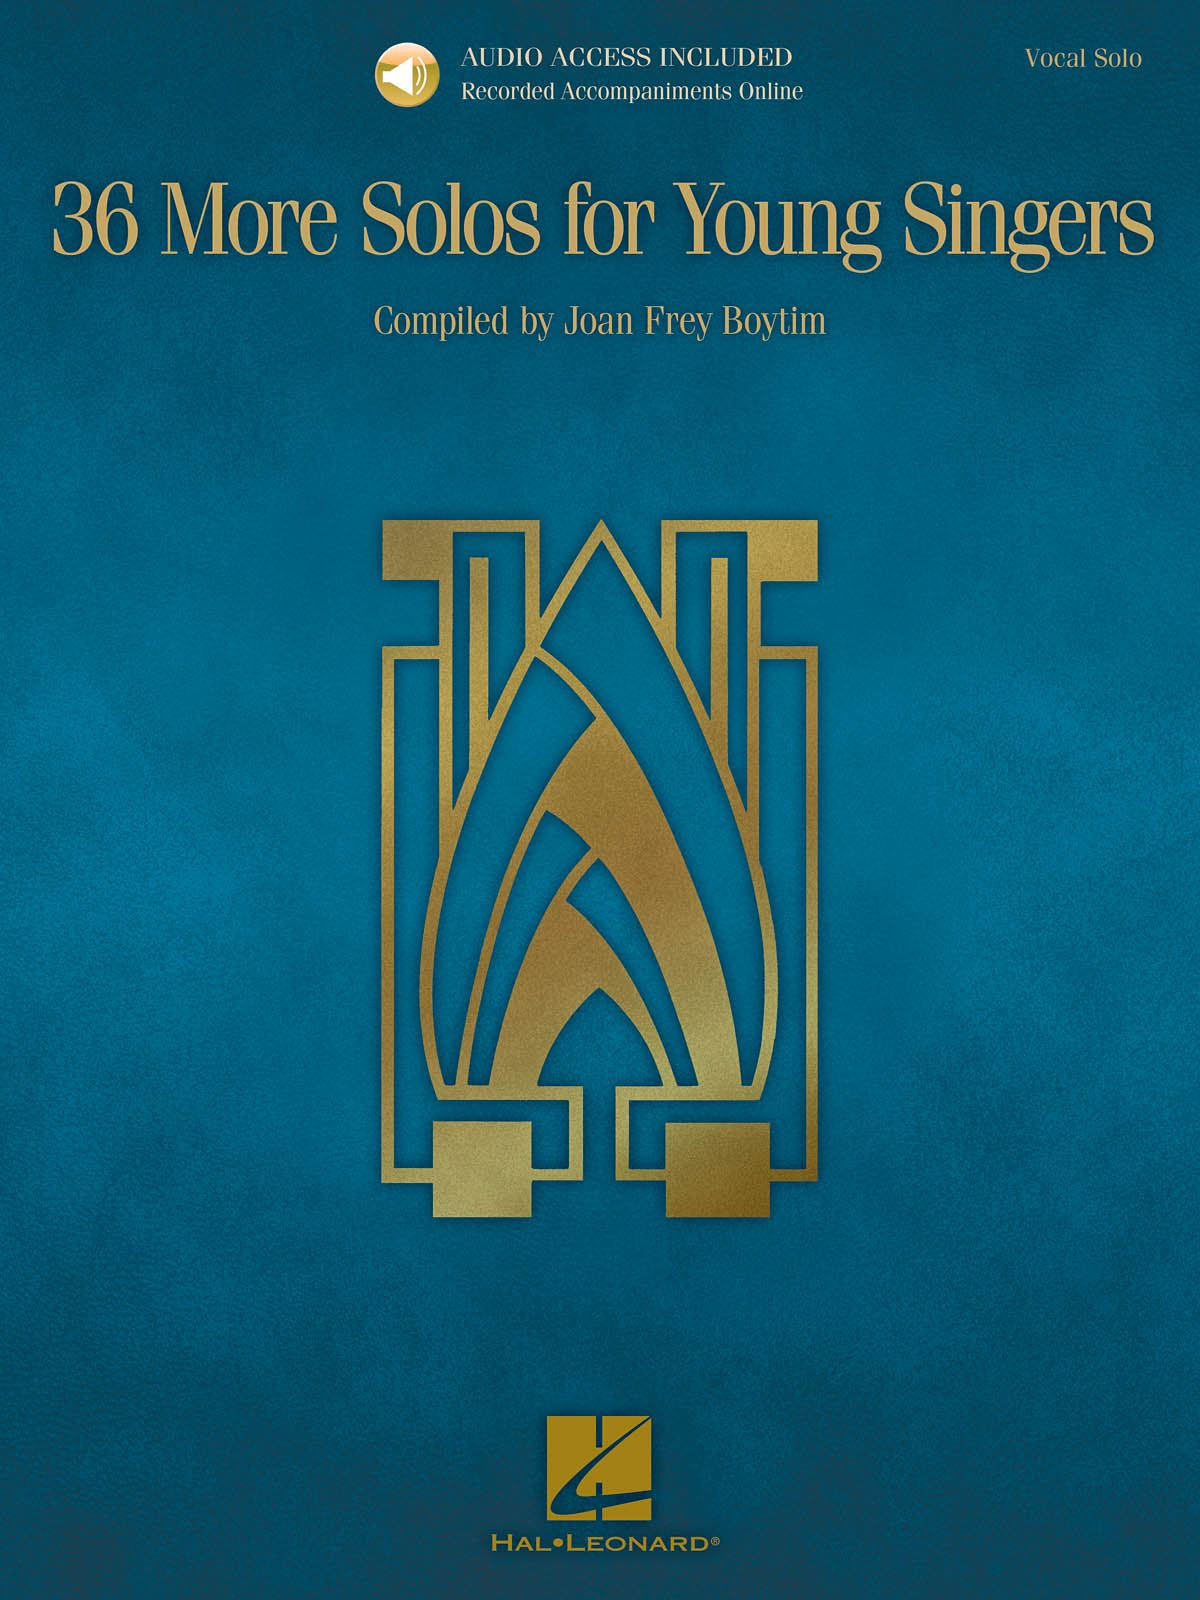 36 More Solos for Young Singers: Vocal Solo: Vocal Album